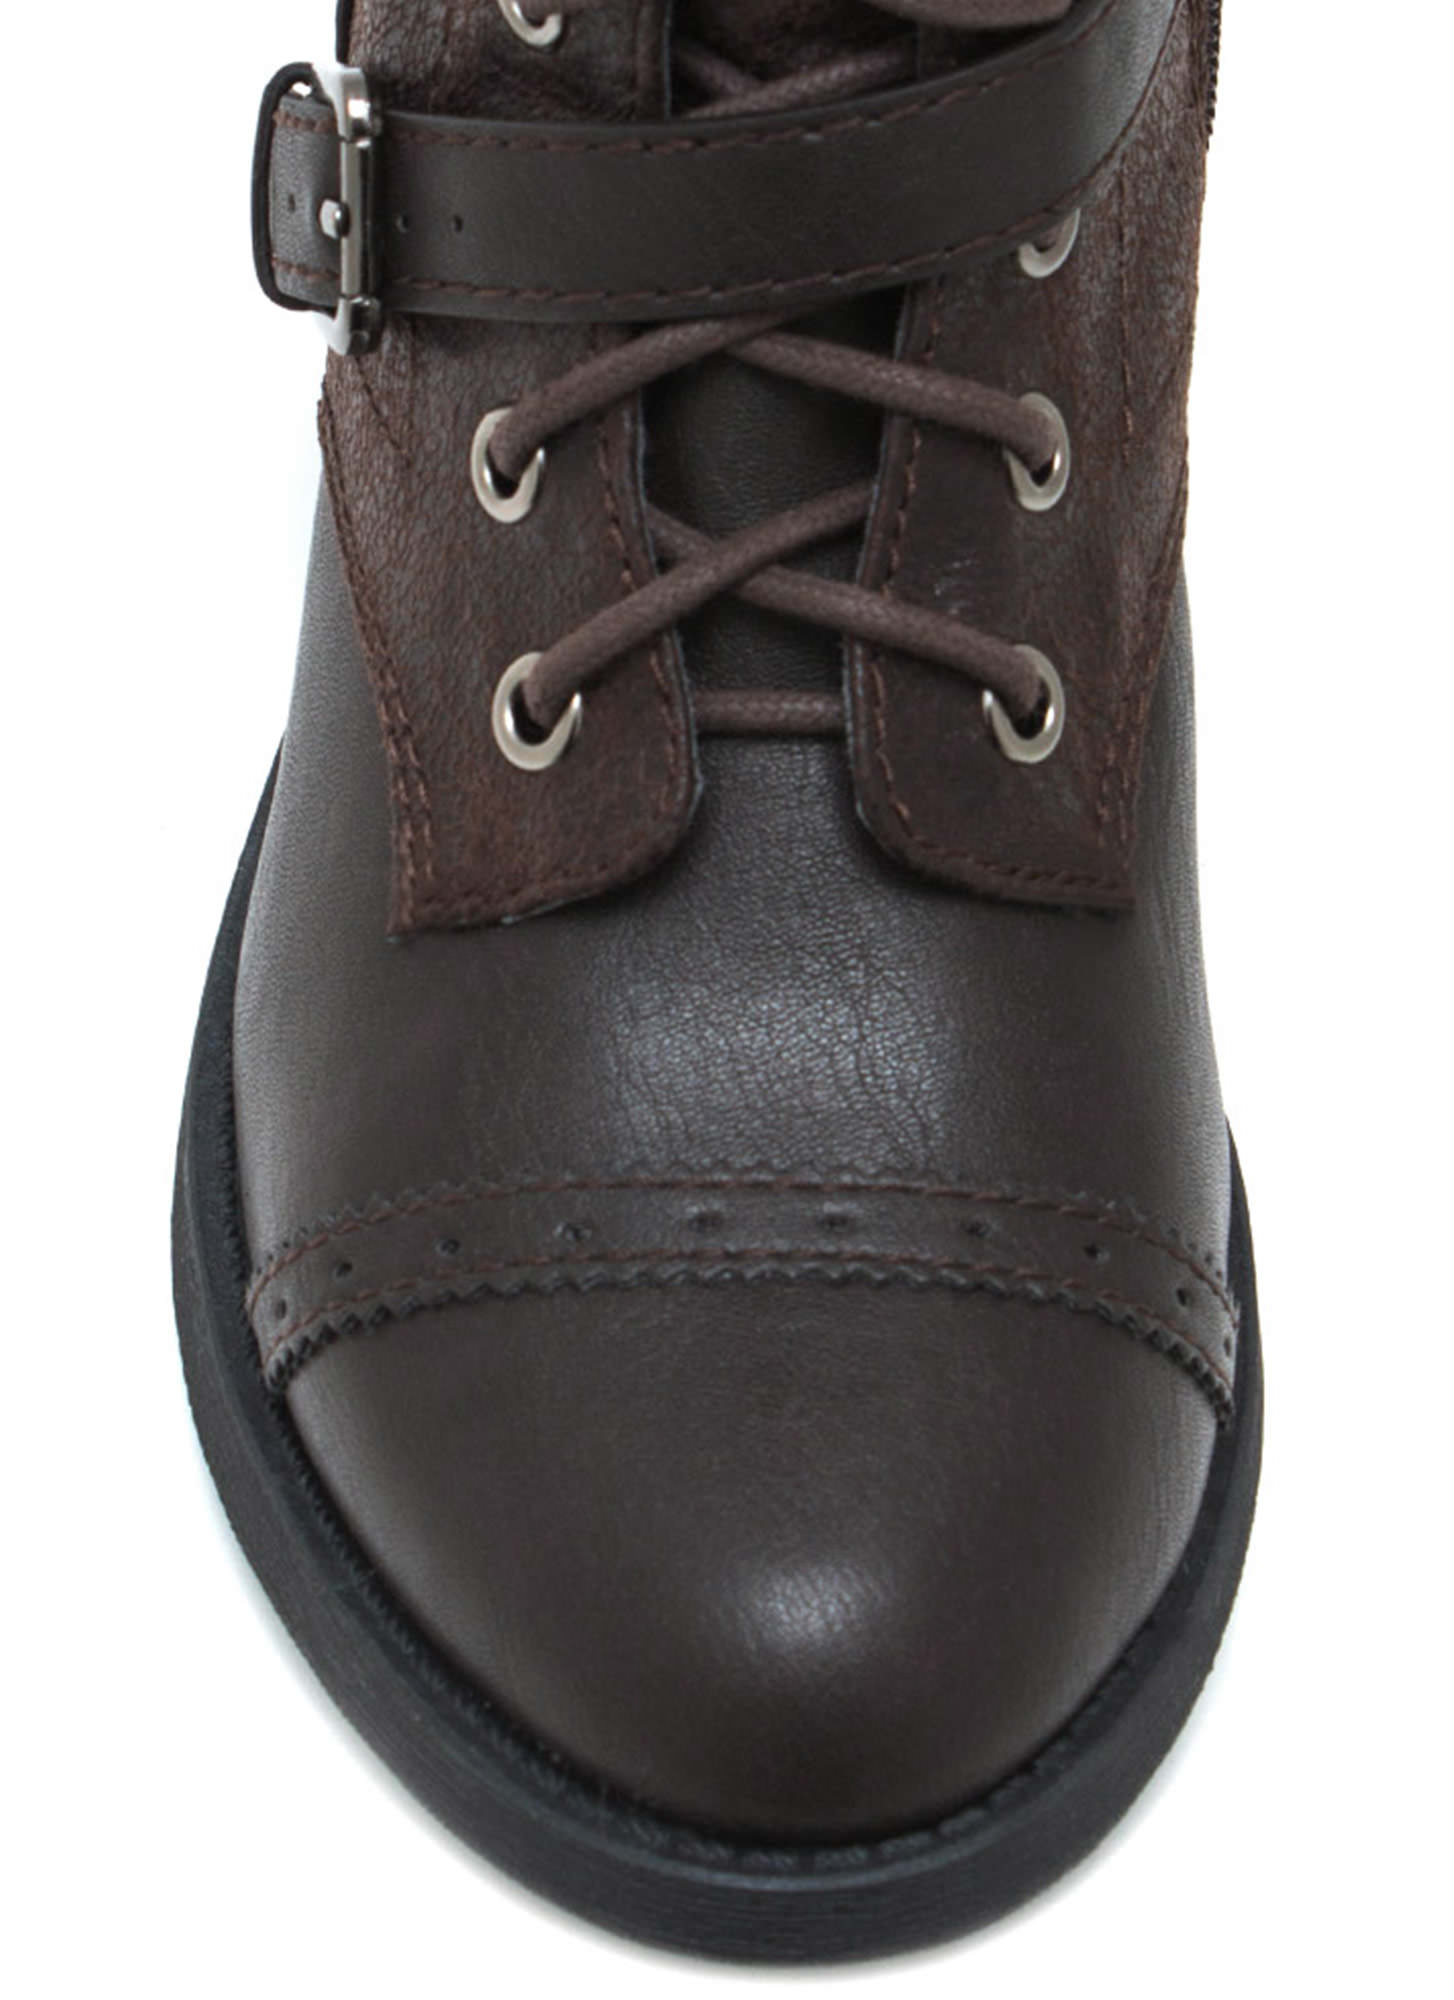 Higher Me Lace Up Boots DKBROWN